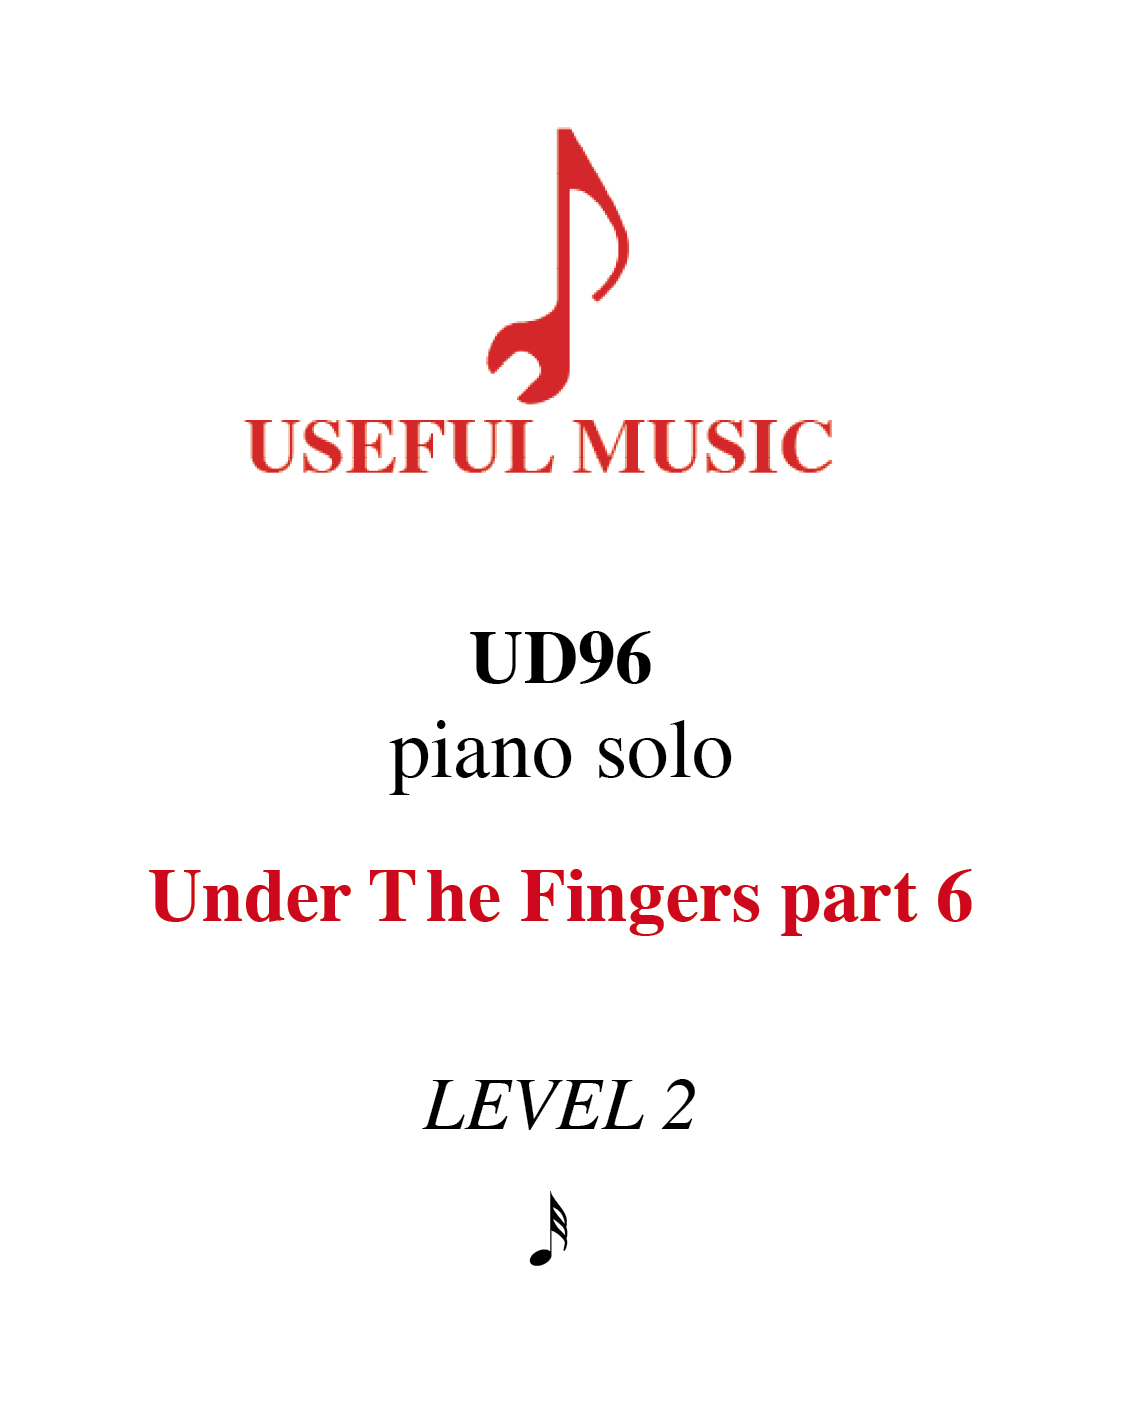 Under The Fingers part 6